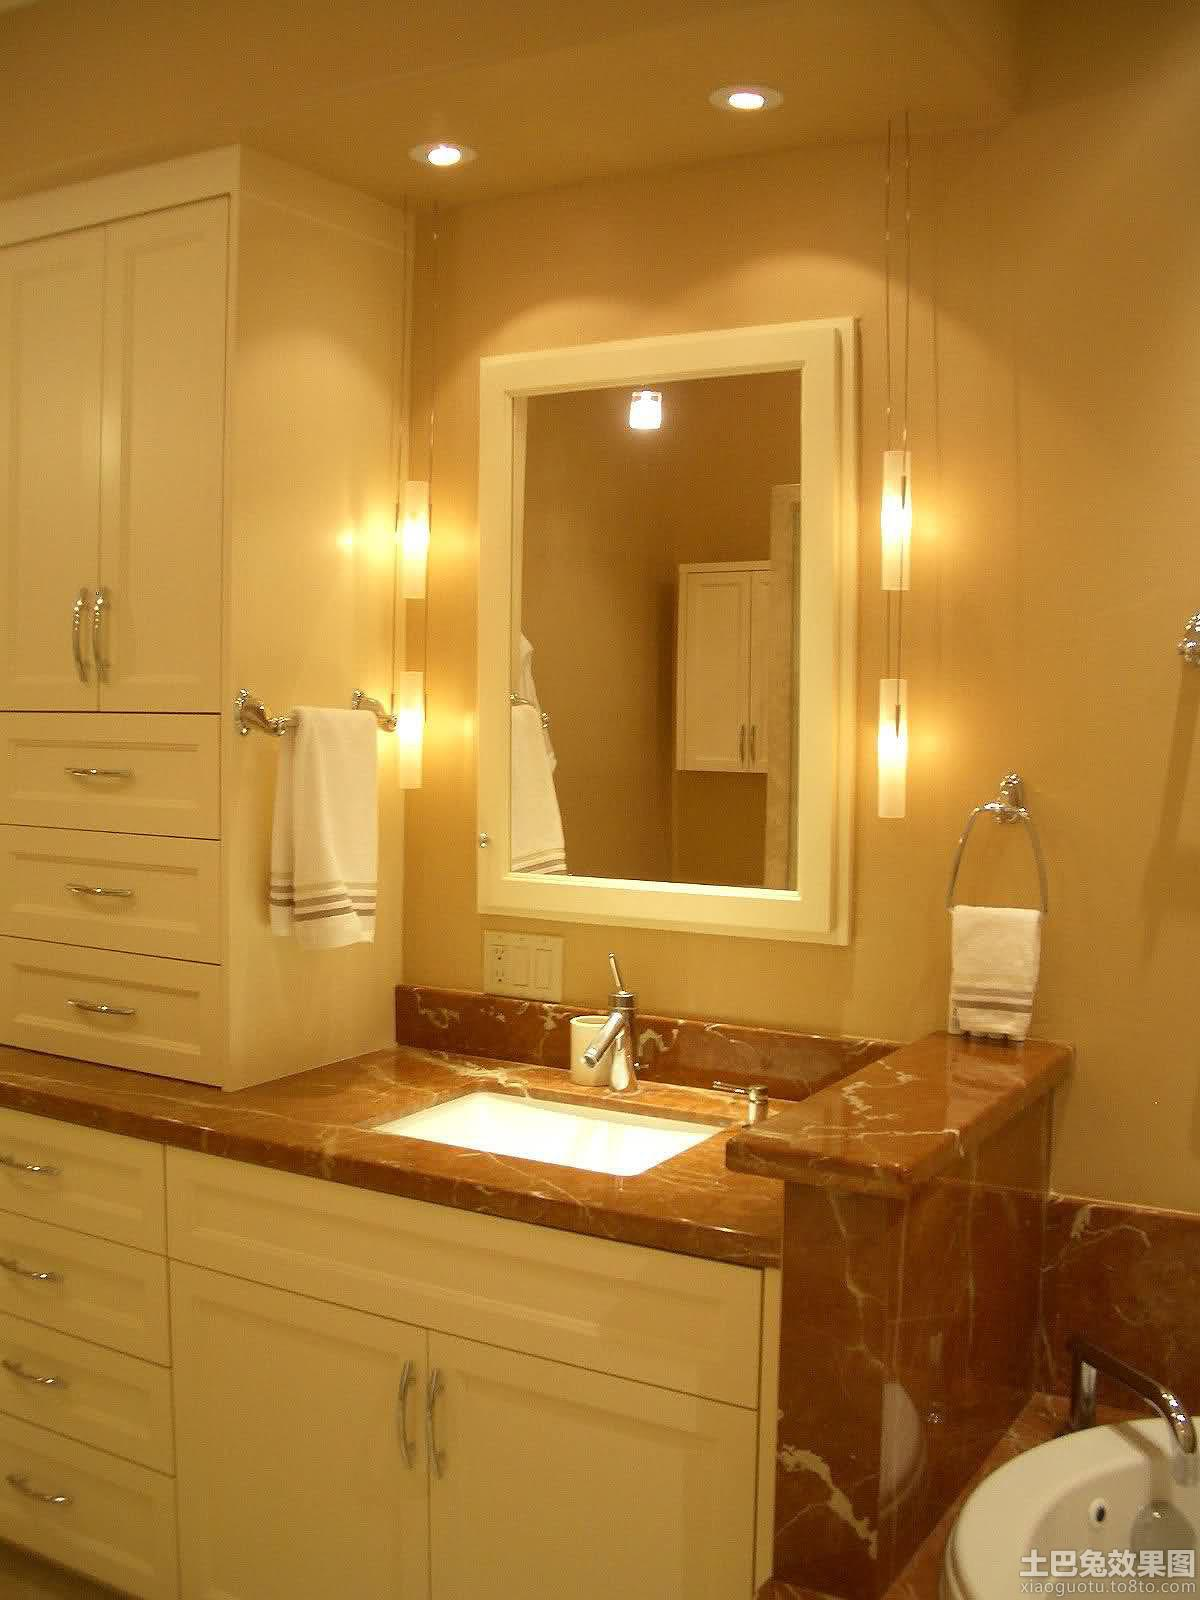 Vanity Cabinets Bathrooms Best Bathroom Lighting